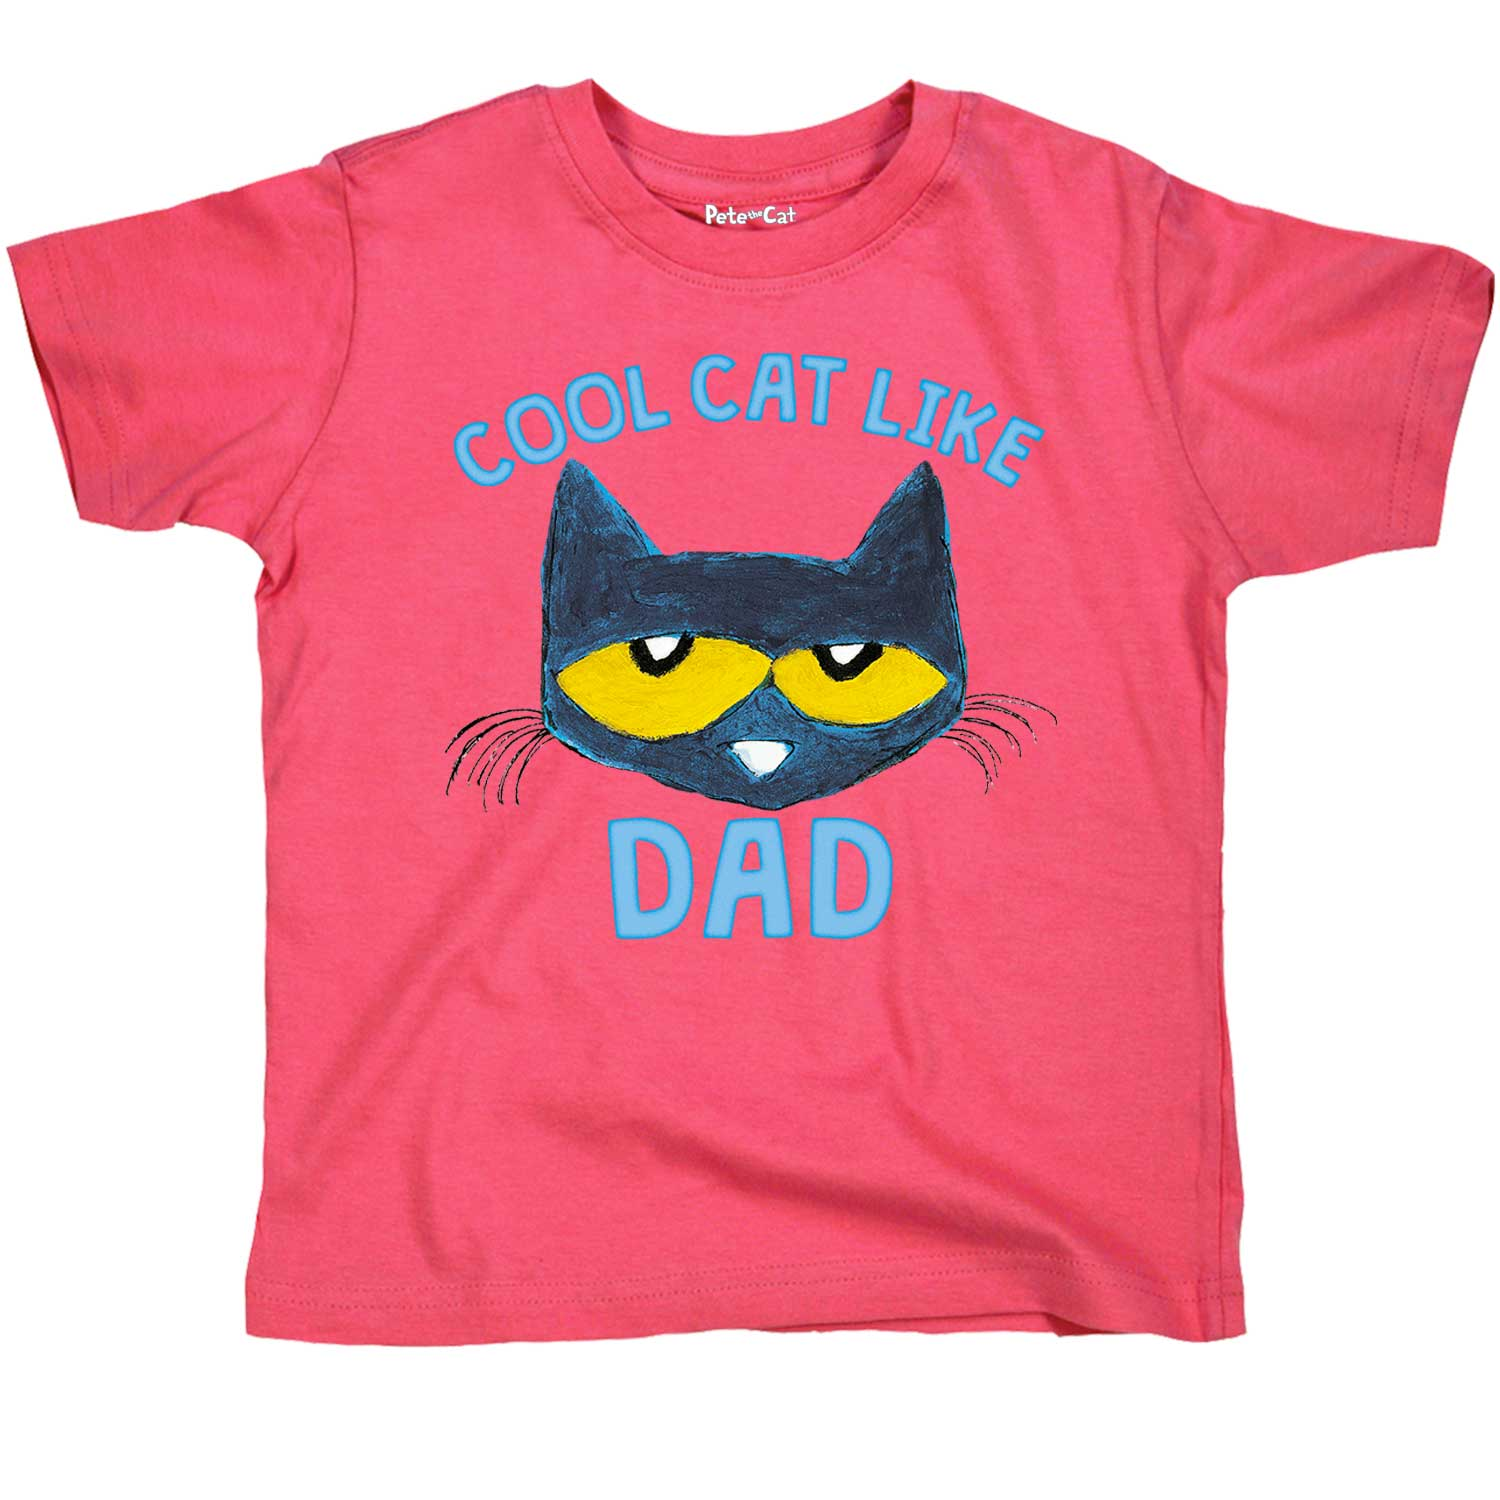 Pete the Cat  Licensed Book Character Cool Cat Like Dad Toddler Tee